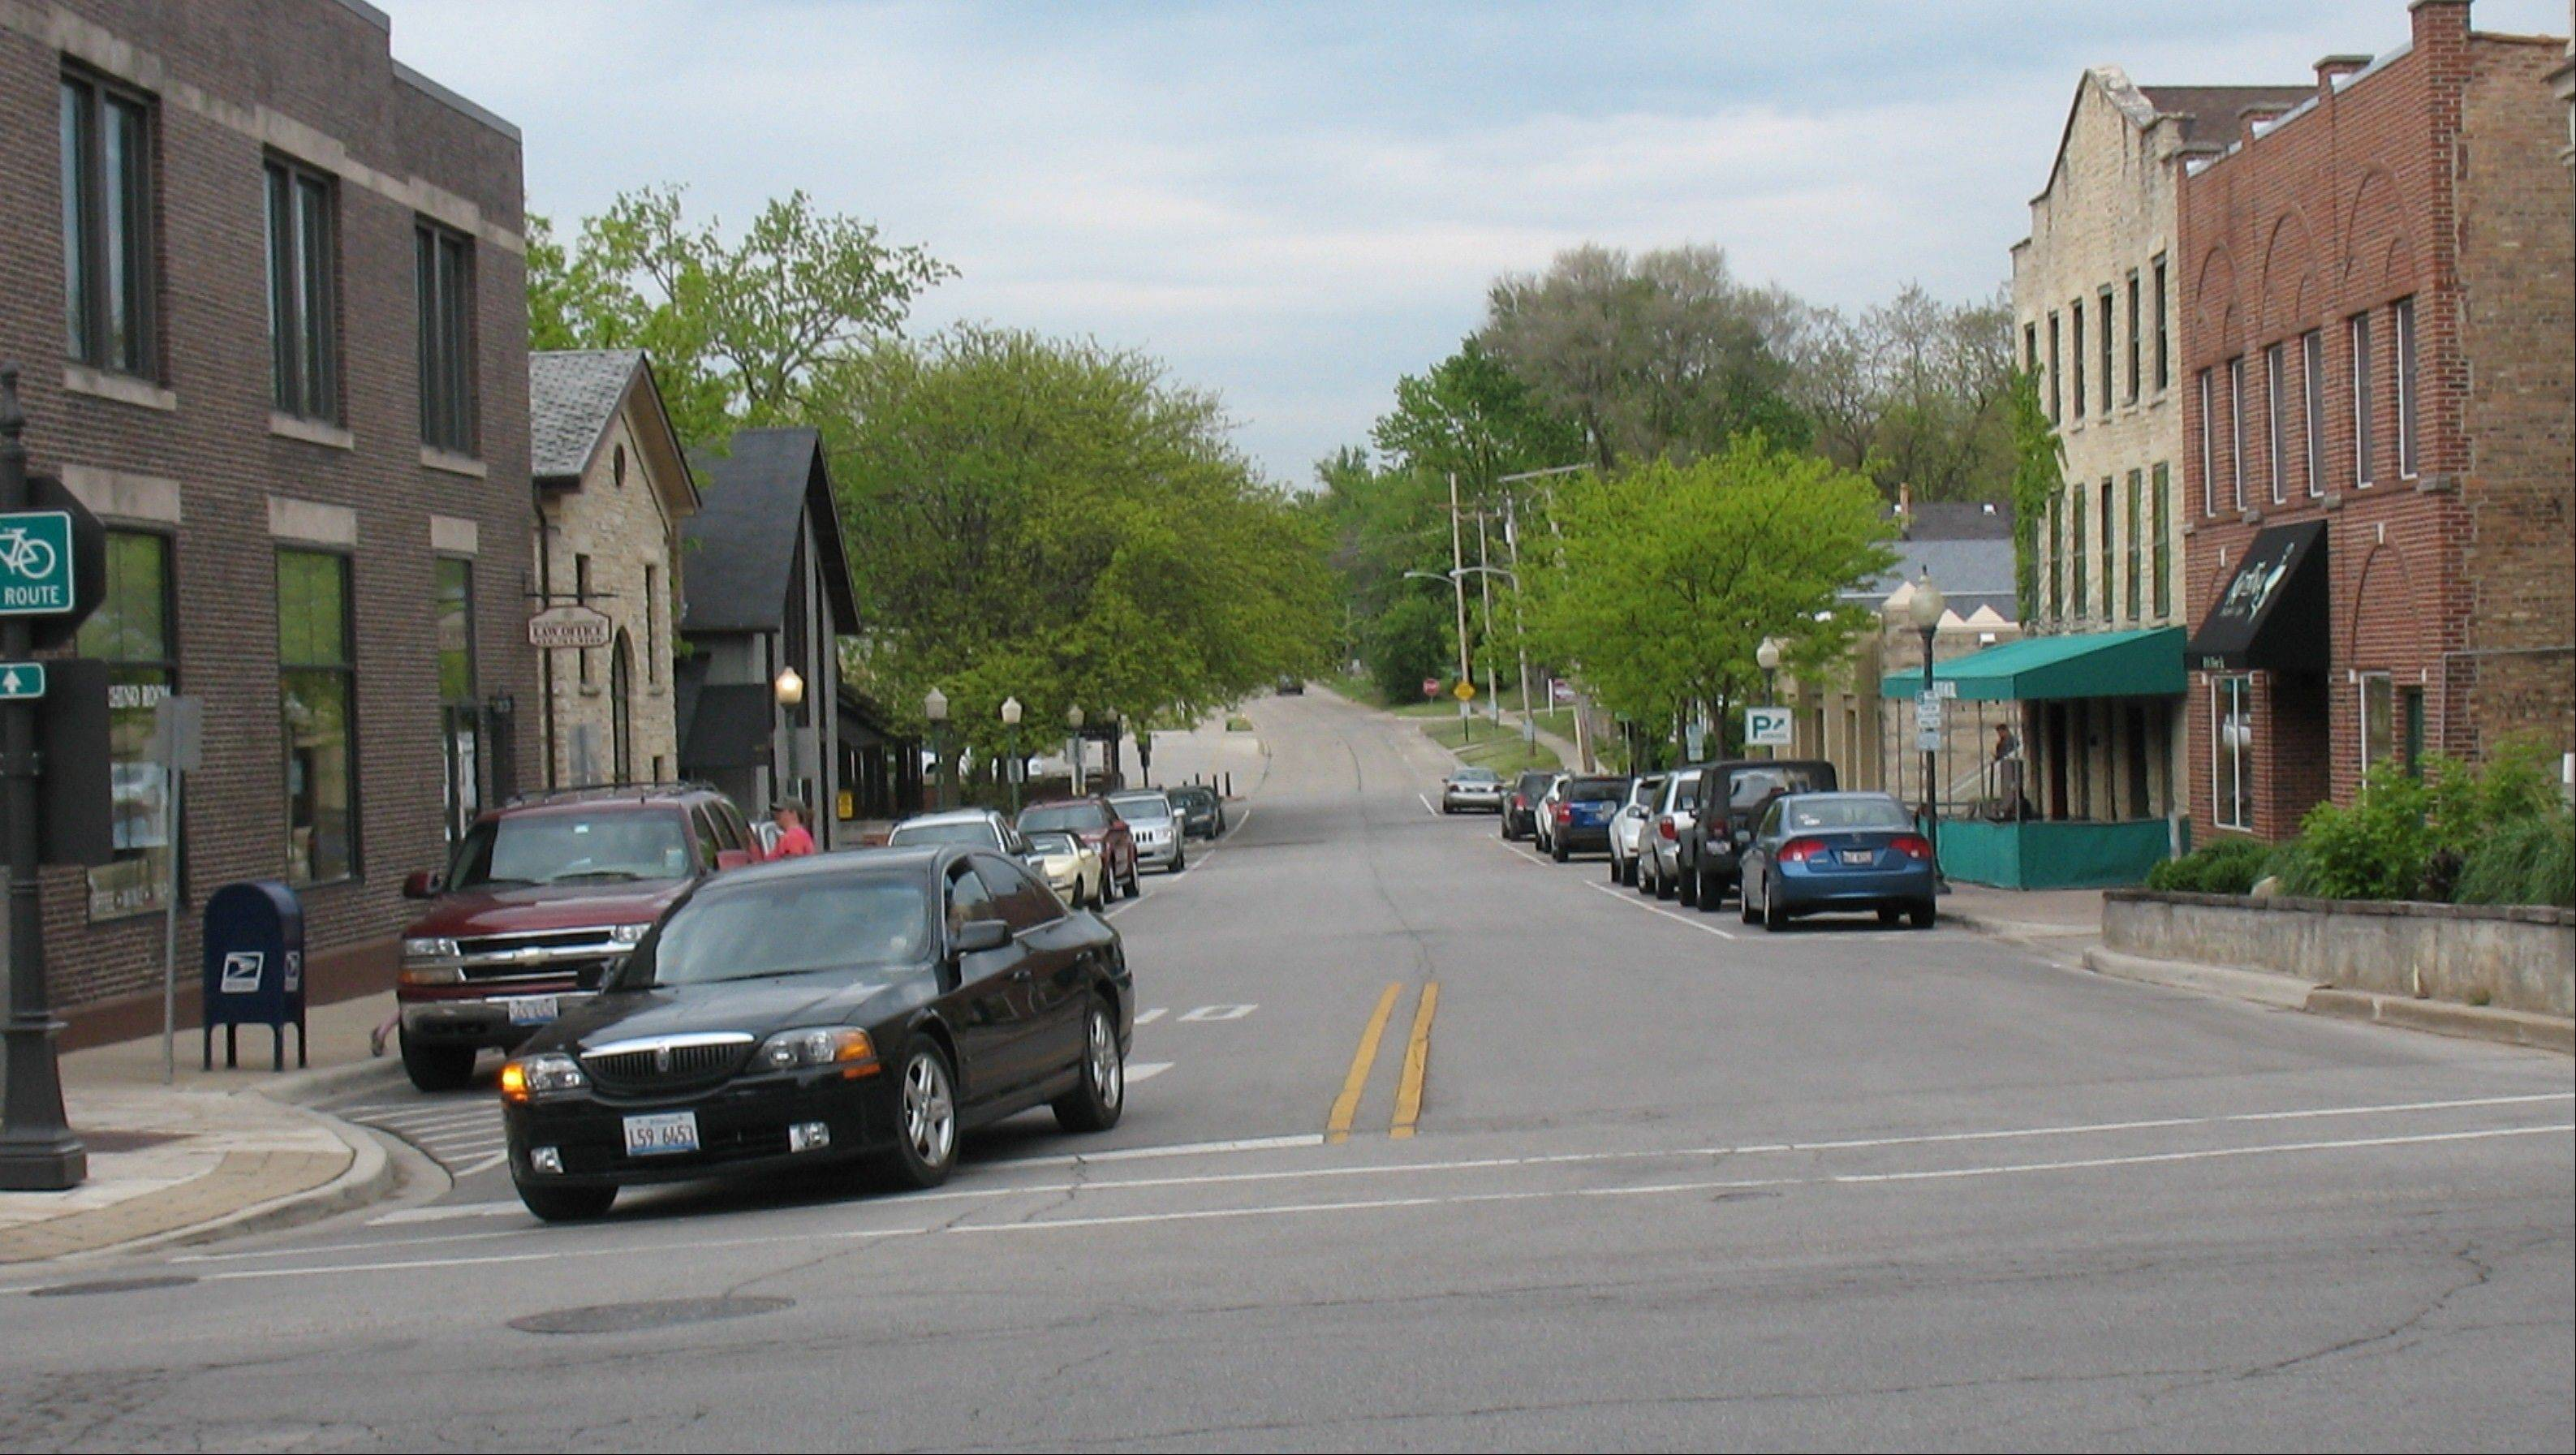 North River Street will be the first area to have work done to improve its looks and modify how it is used, as part of a streetscape project in downtown Batavia.